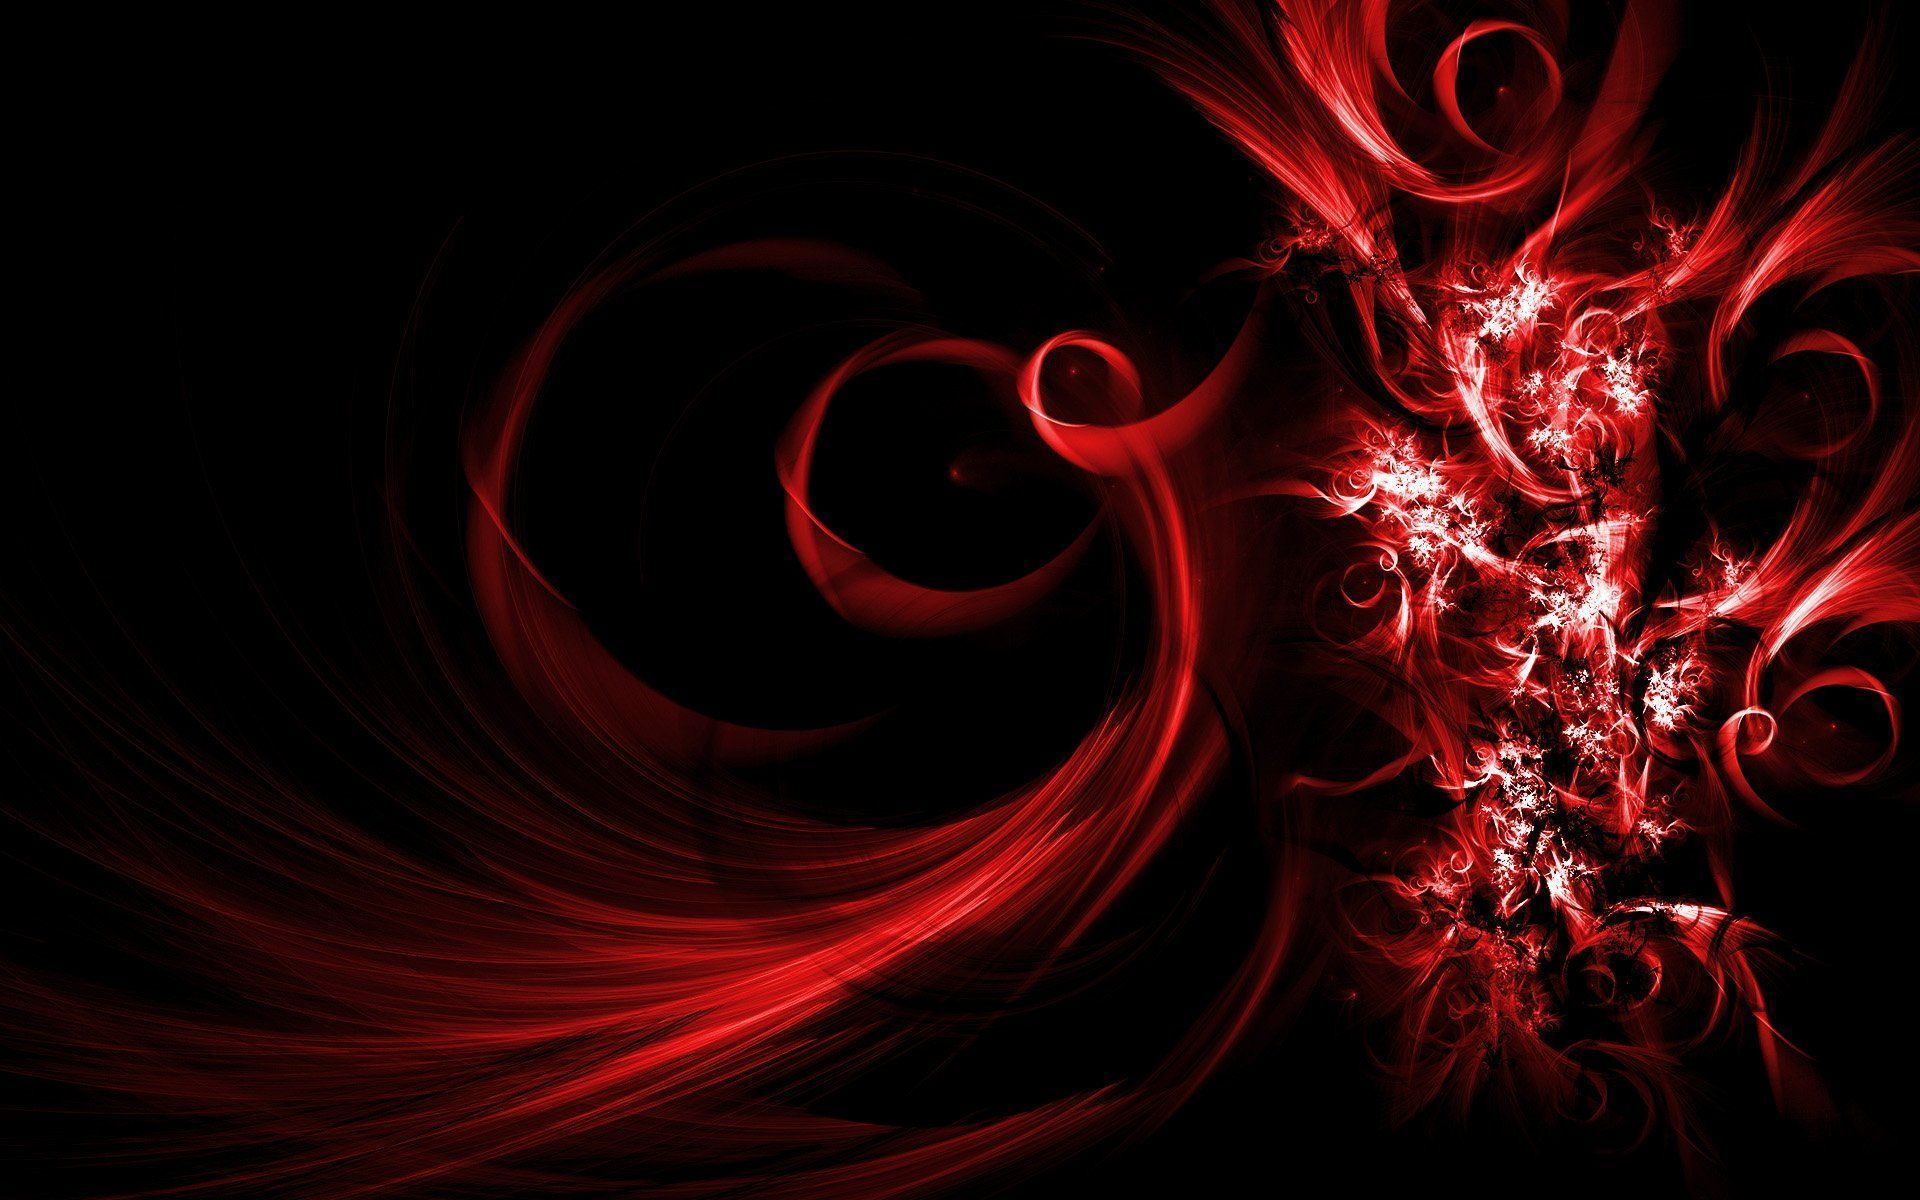 Black And Red Abstract Wallpaper 01 - 1920x1200